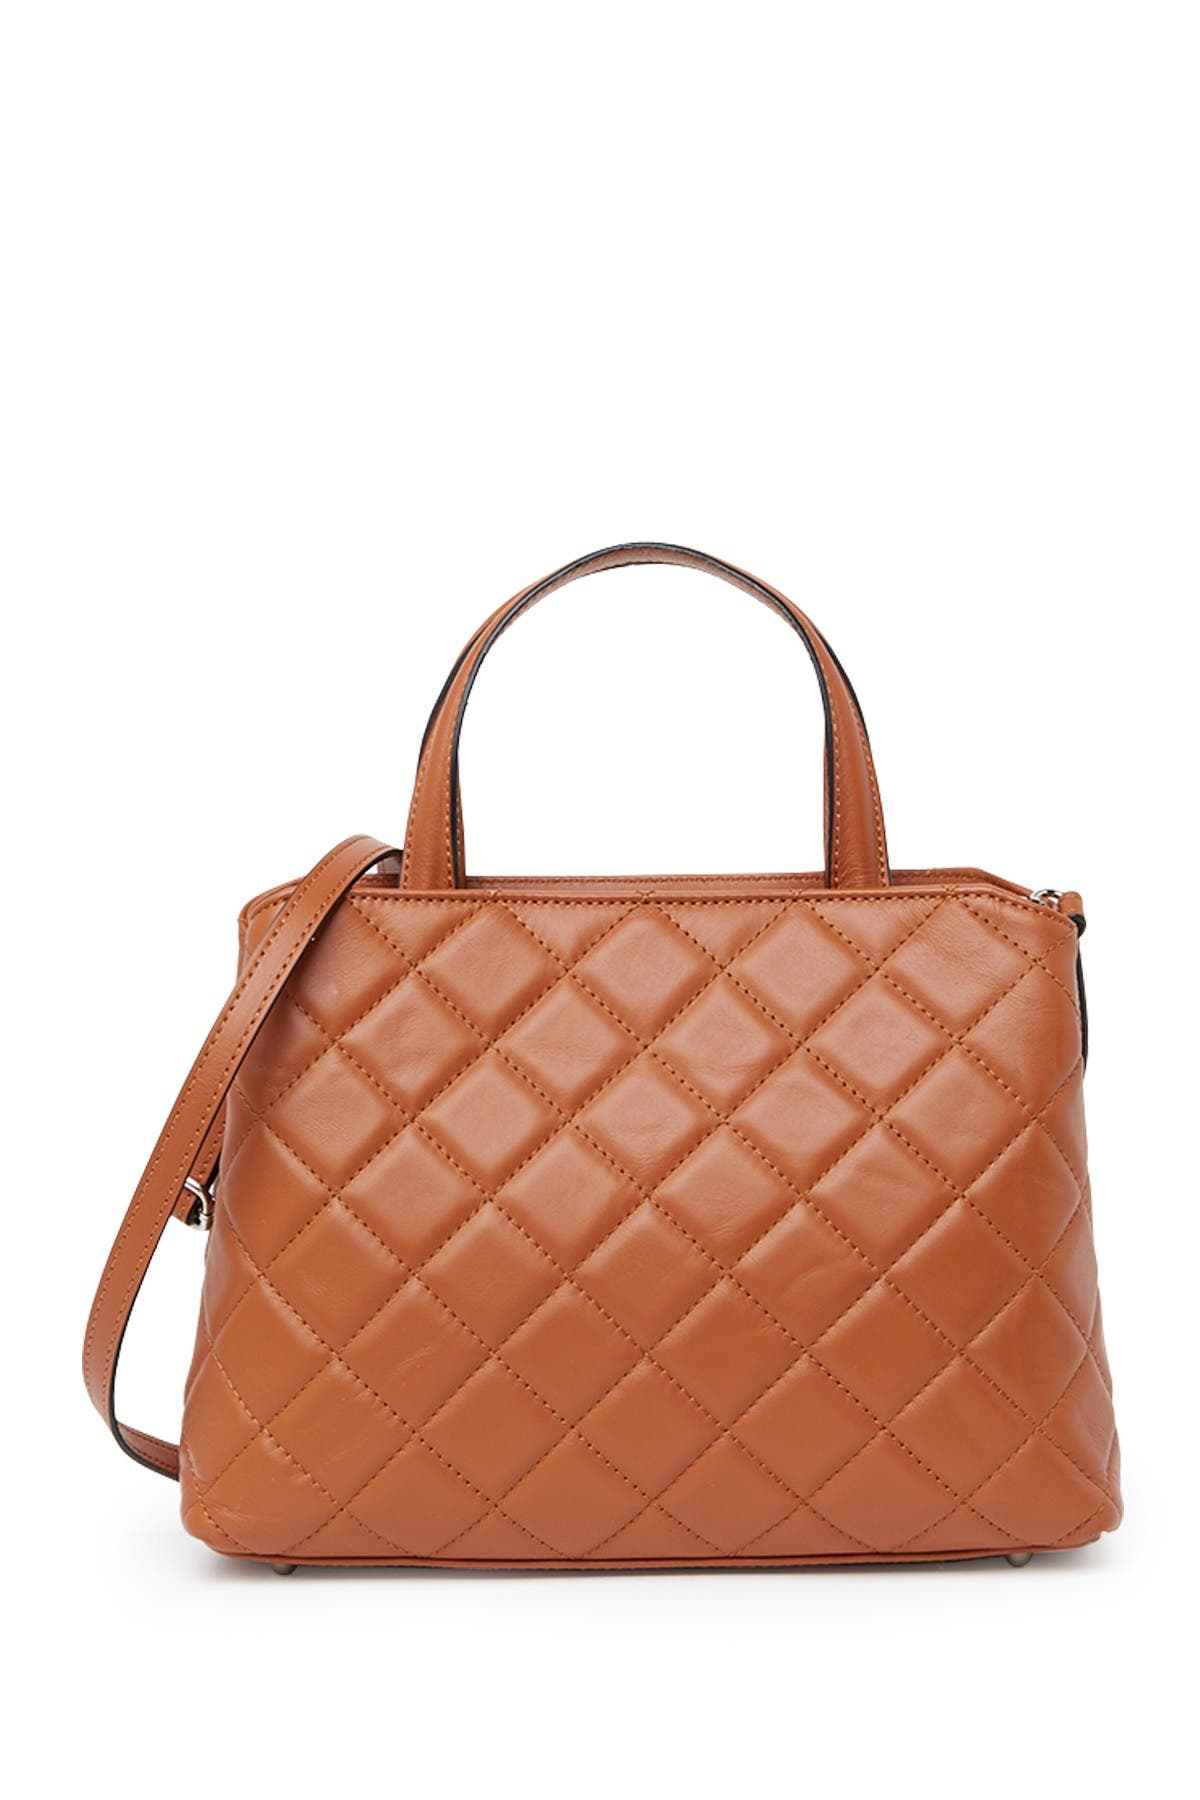 Image of Roberta M Quilted Leather Satchel